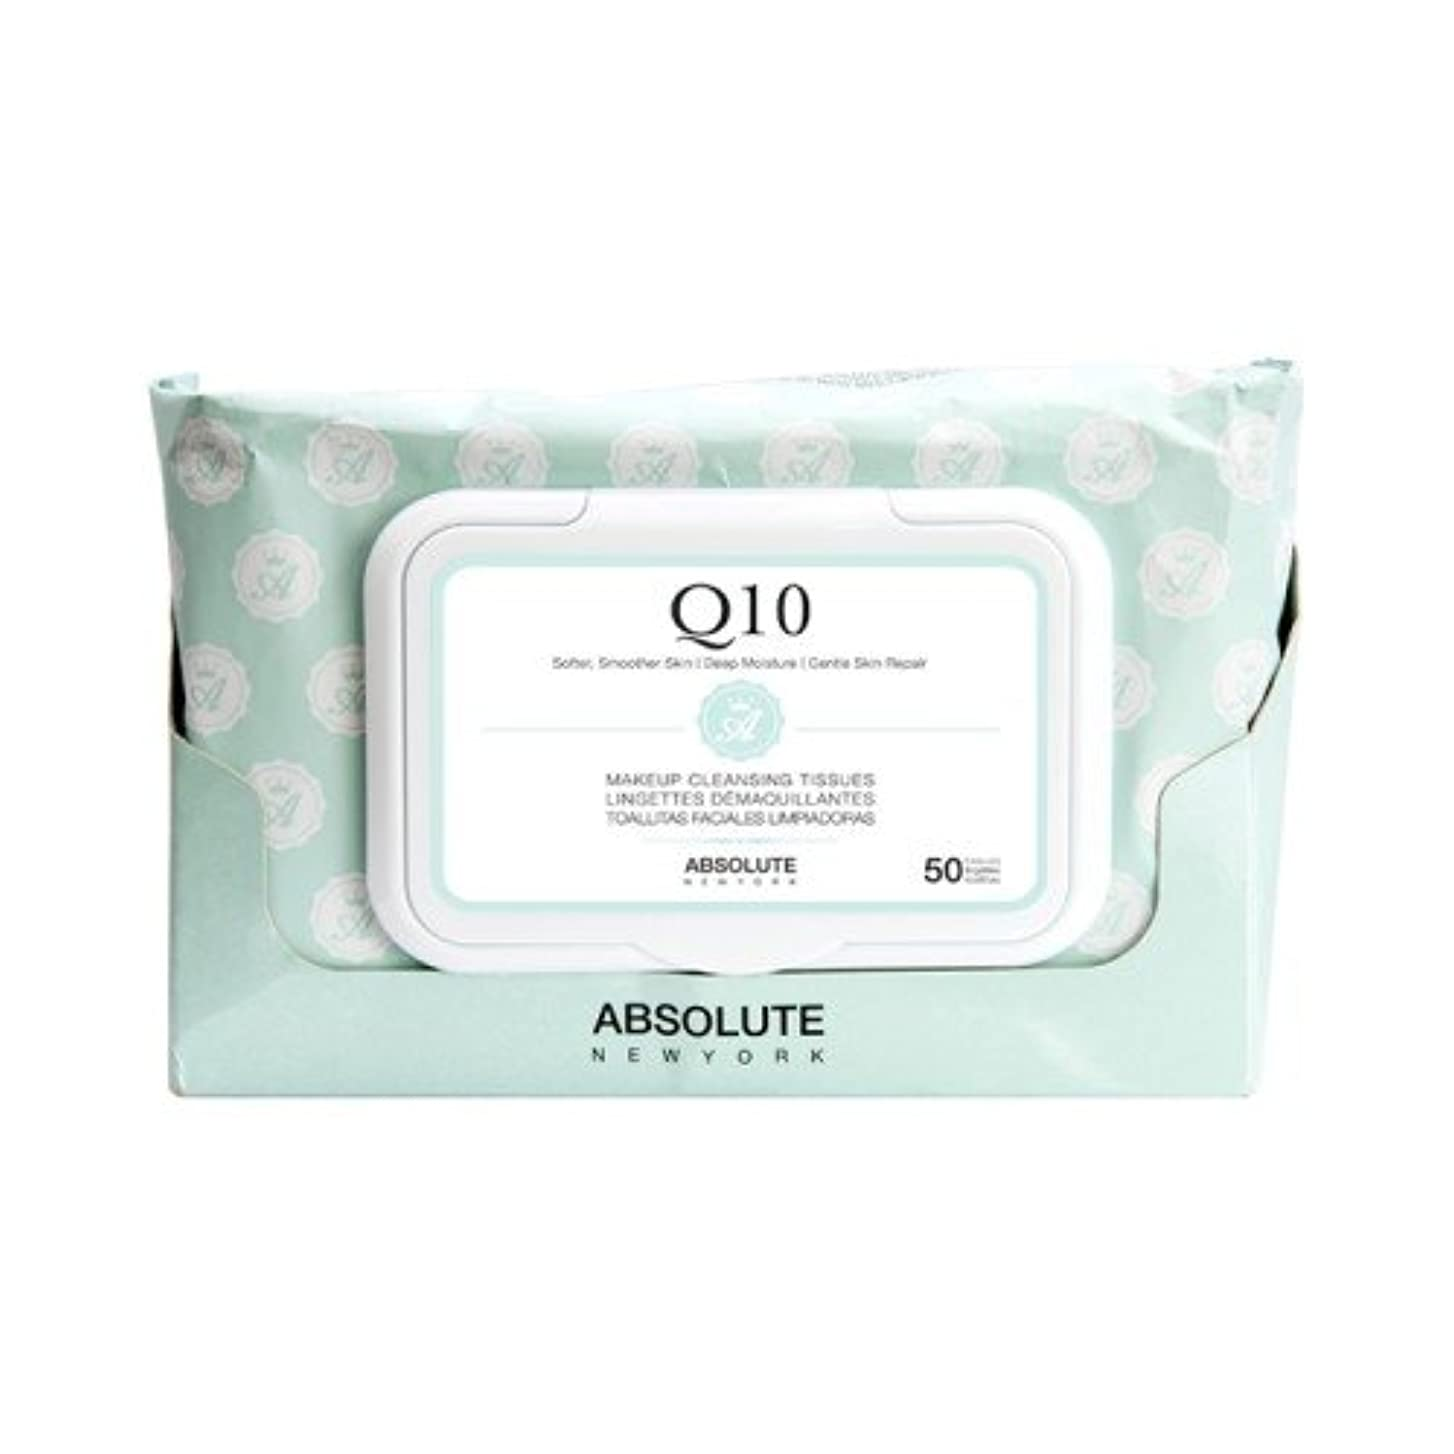 (3 Pack) ABSOLUTE Makeup Cleansing Tissue 50CT - Q10 (並行輸入品)